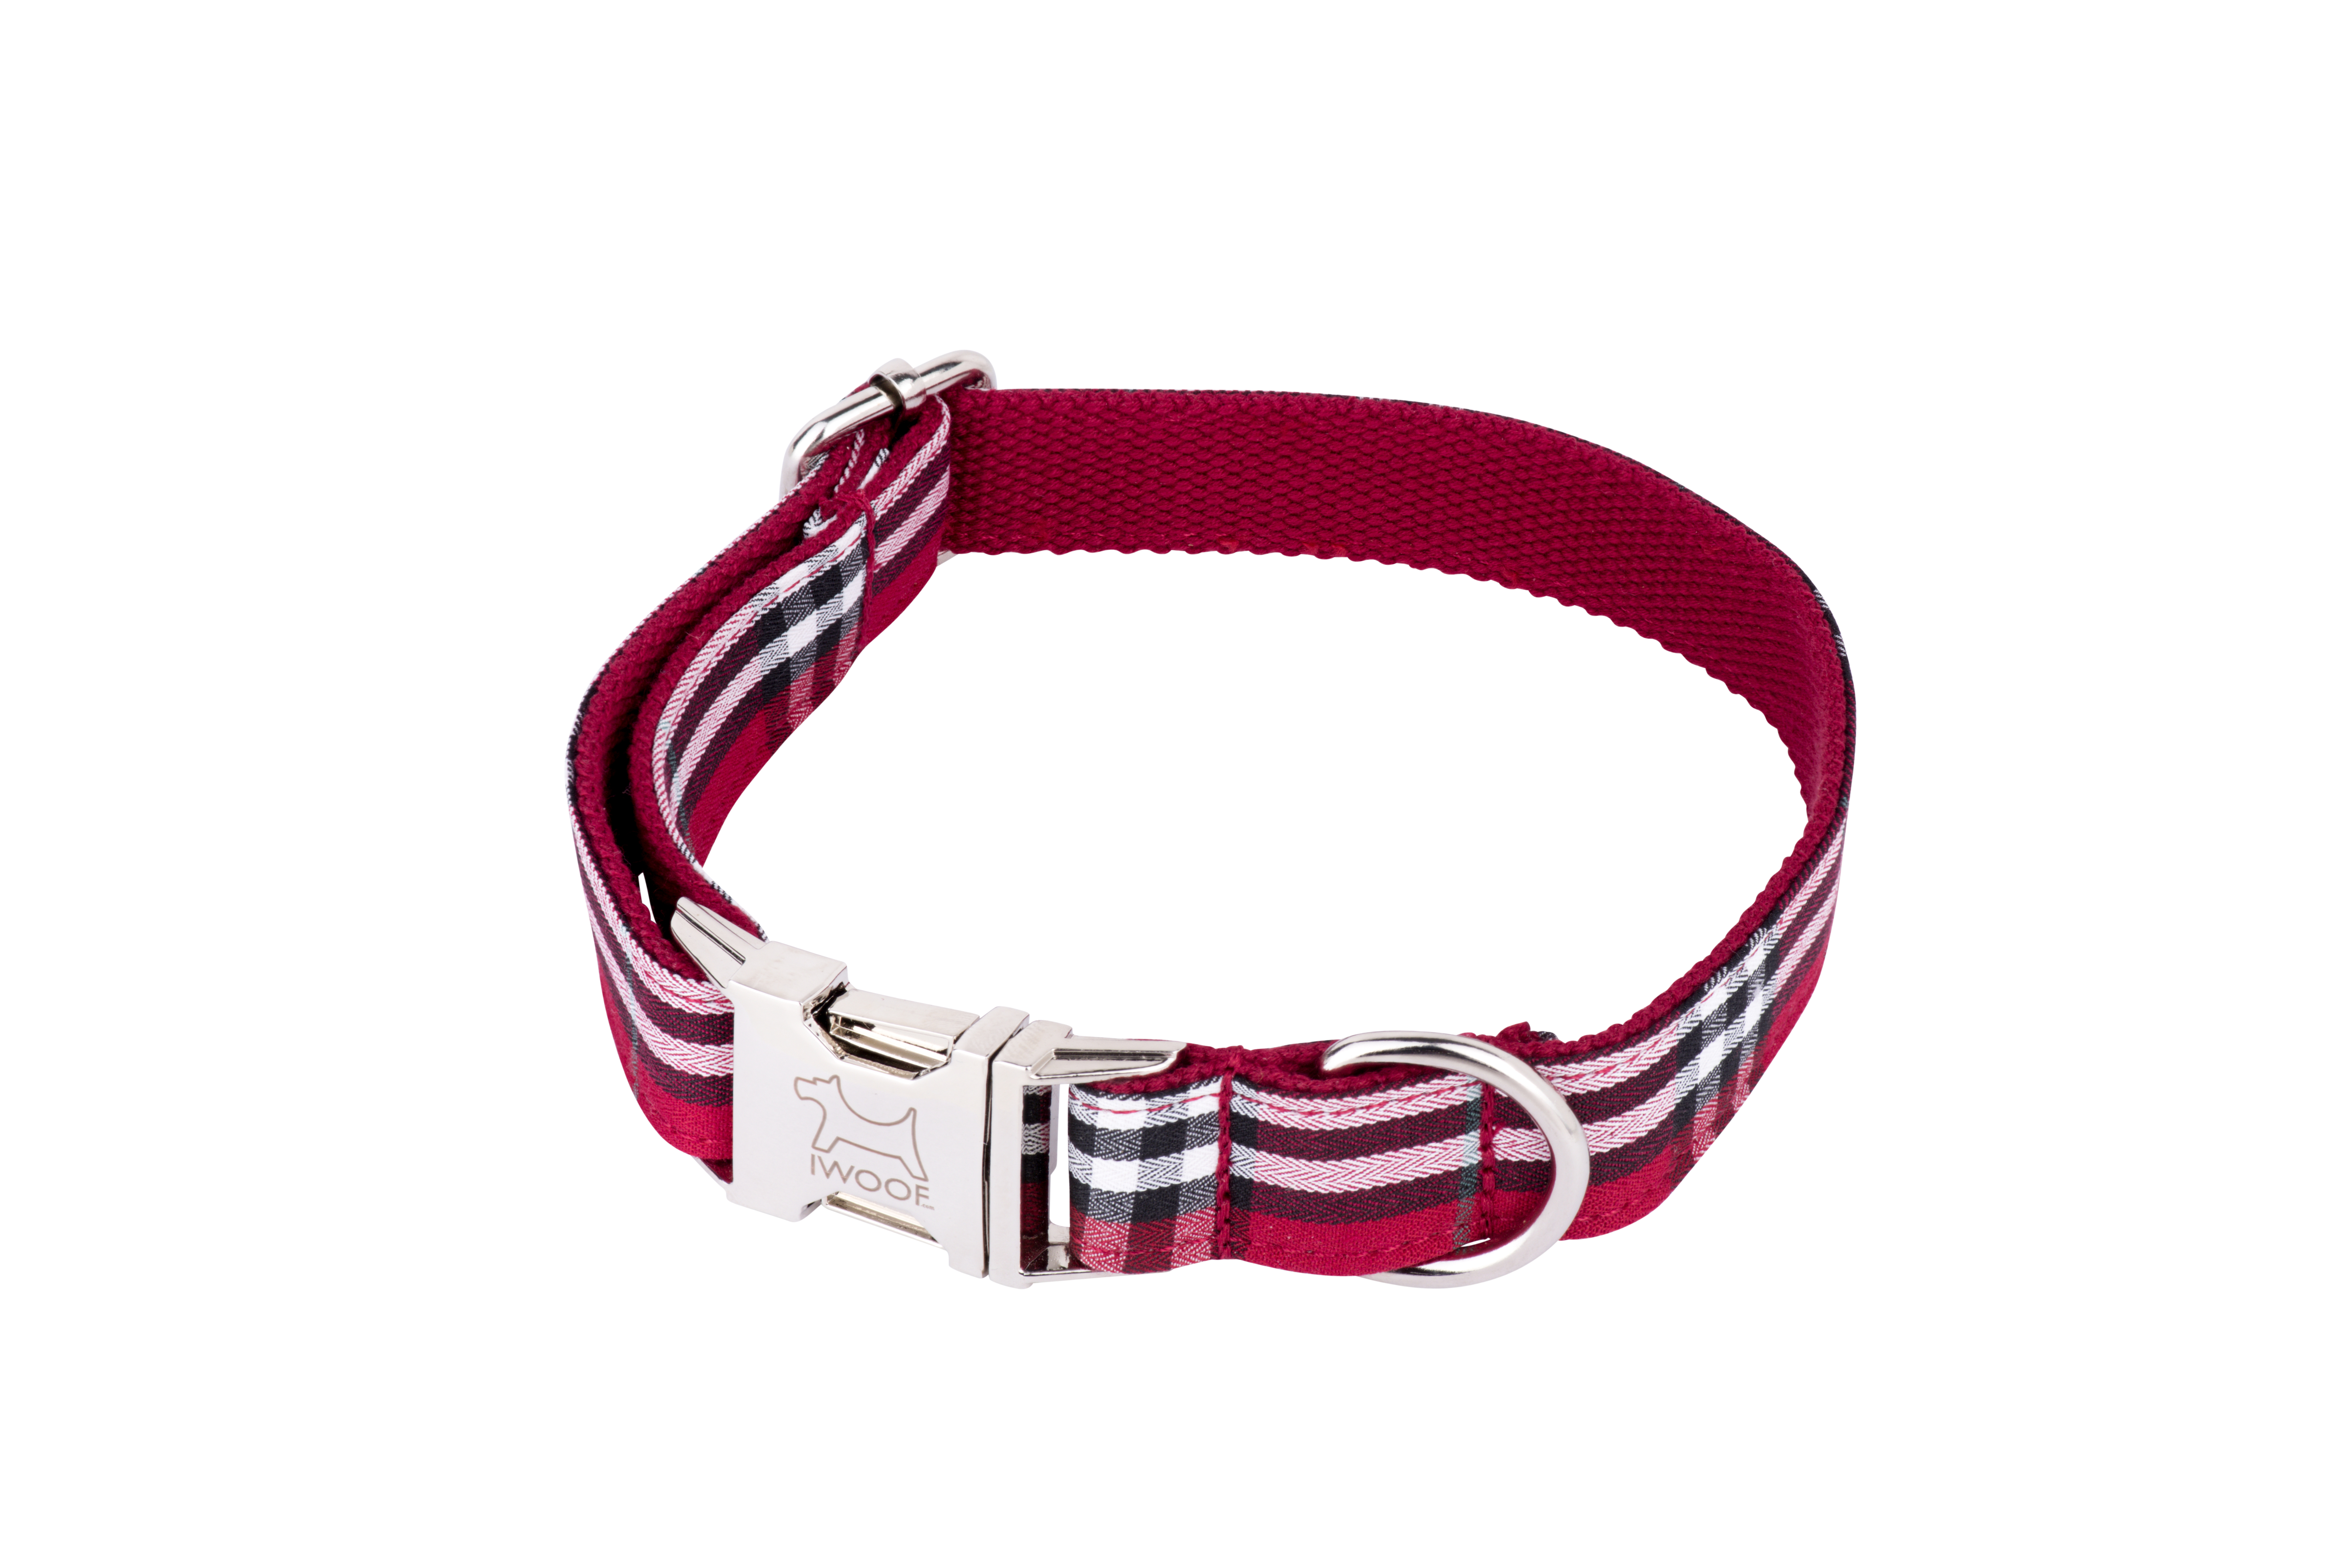 Tomato Designer Dog Collar And Lead Set By Iwoof Com In